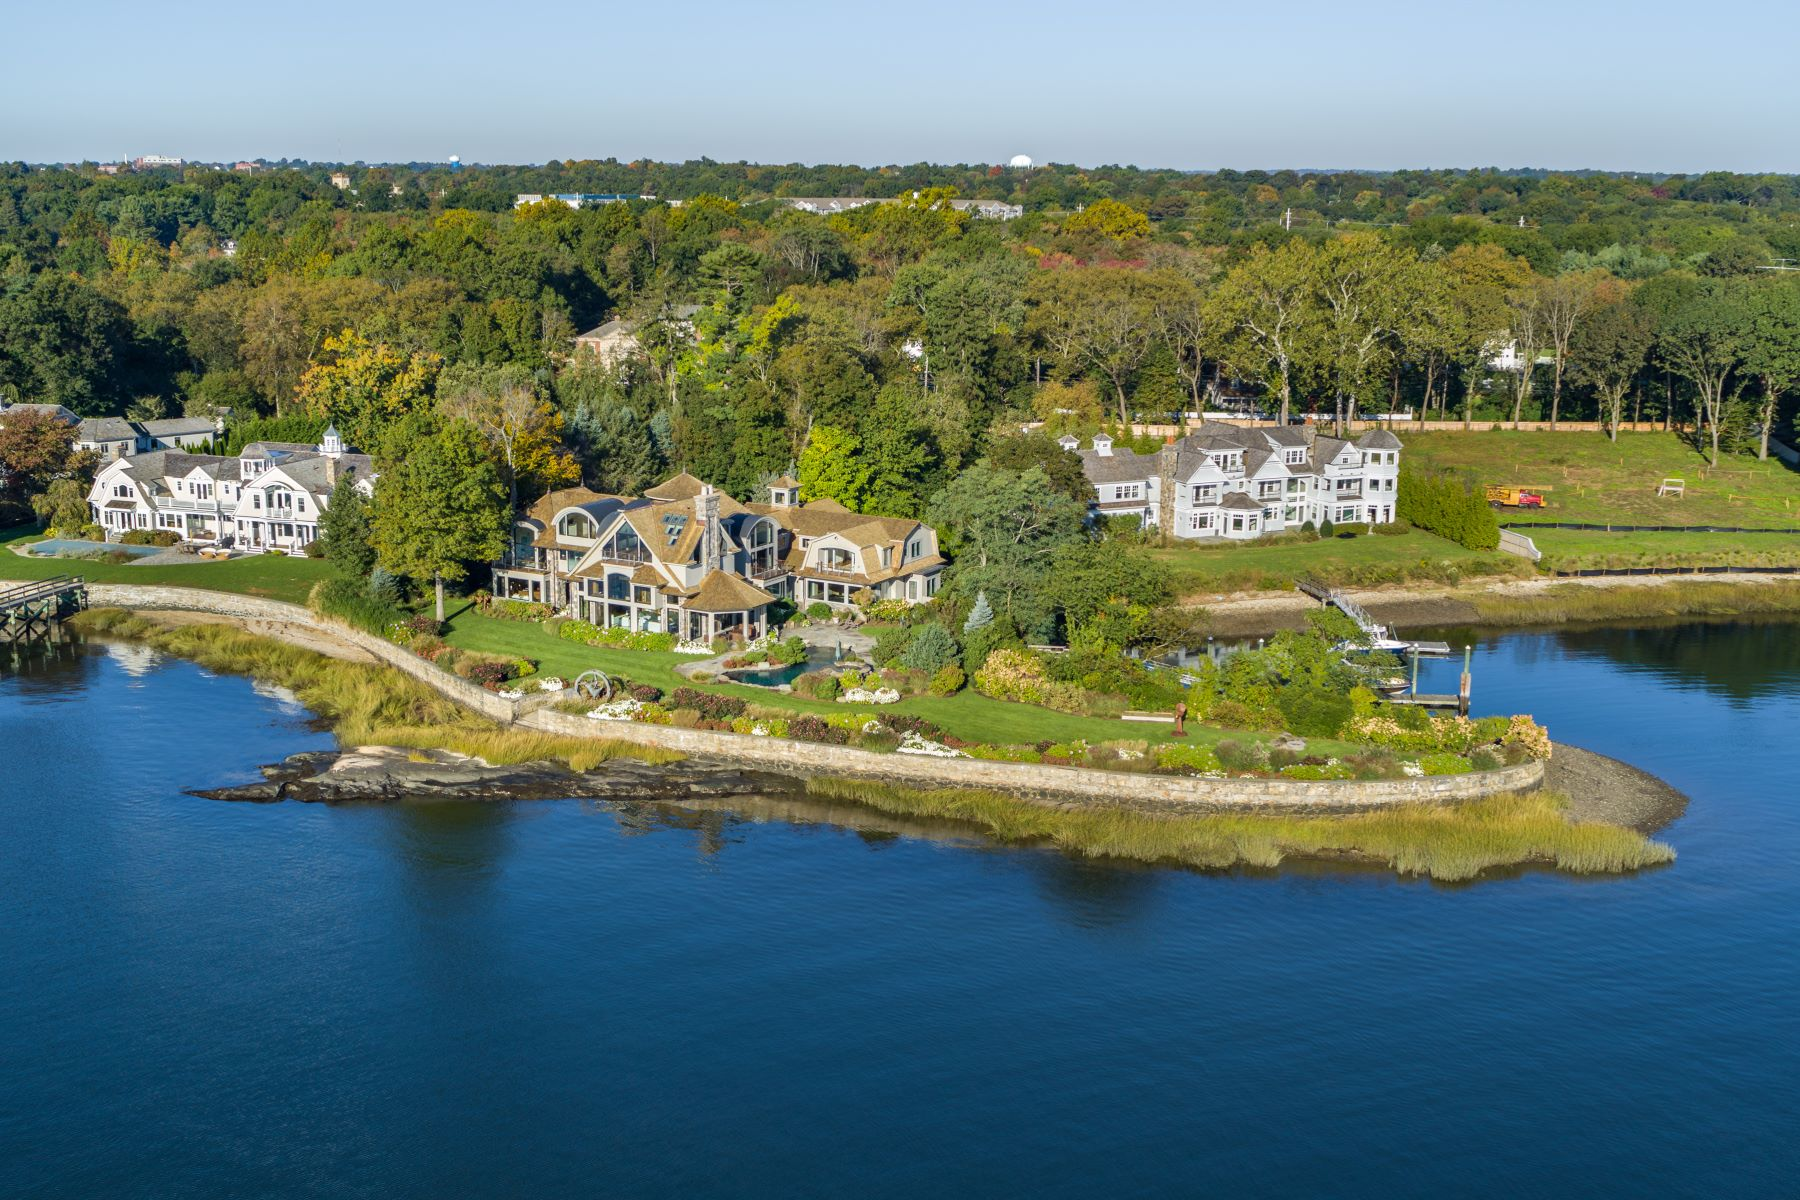 Single Family Homes for Sale at Paradise Point 5 Charmers Landing Westport, Connecticut 06880 United States